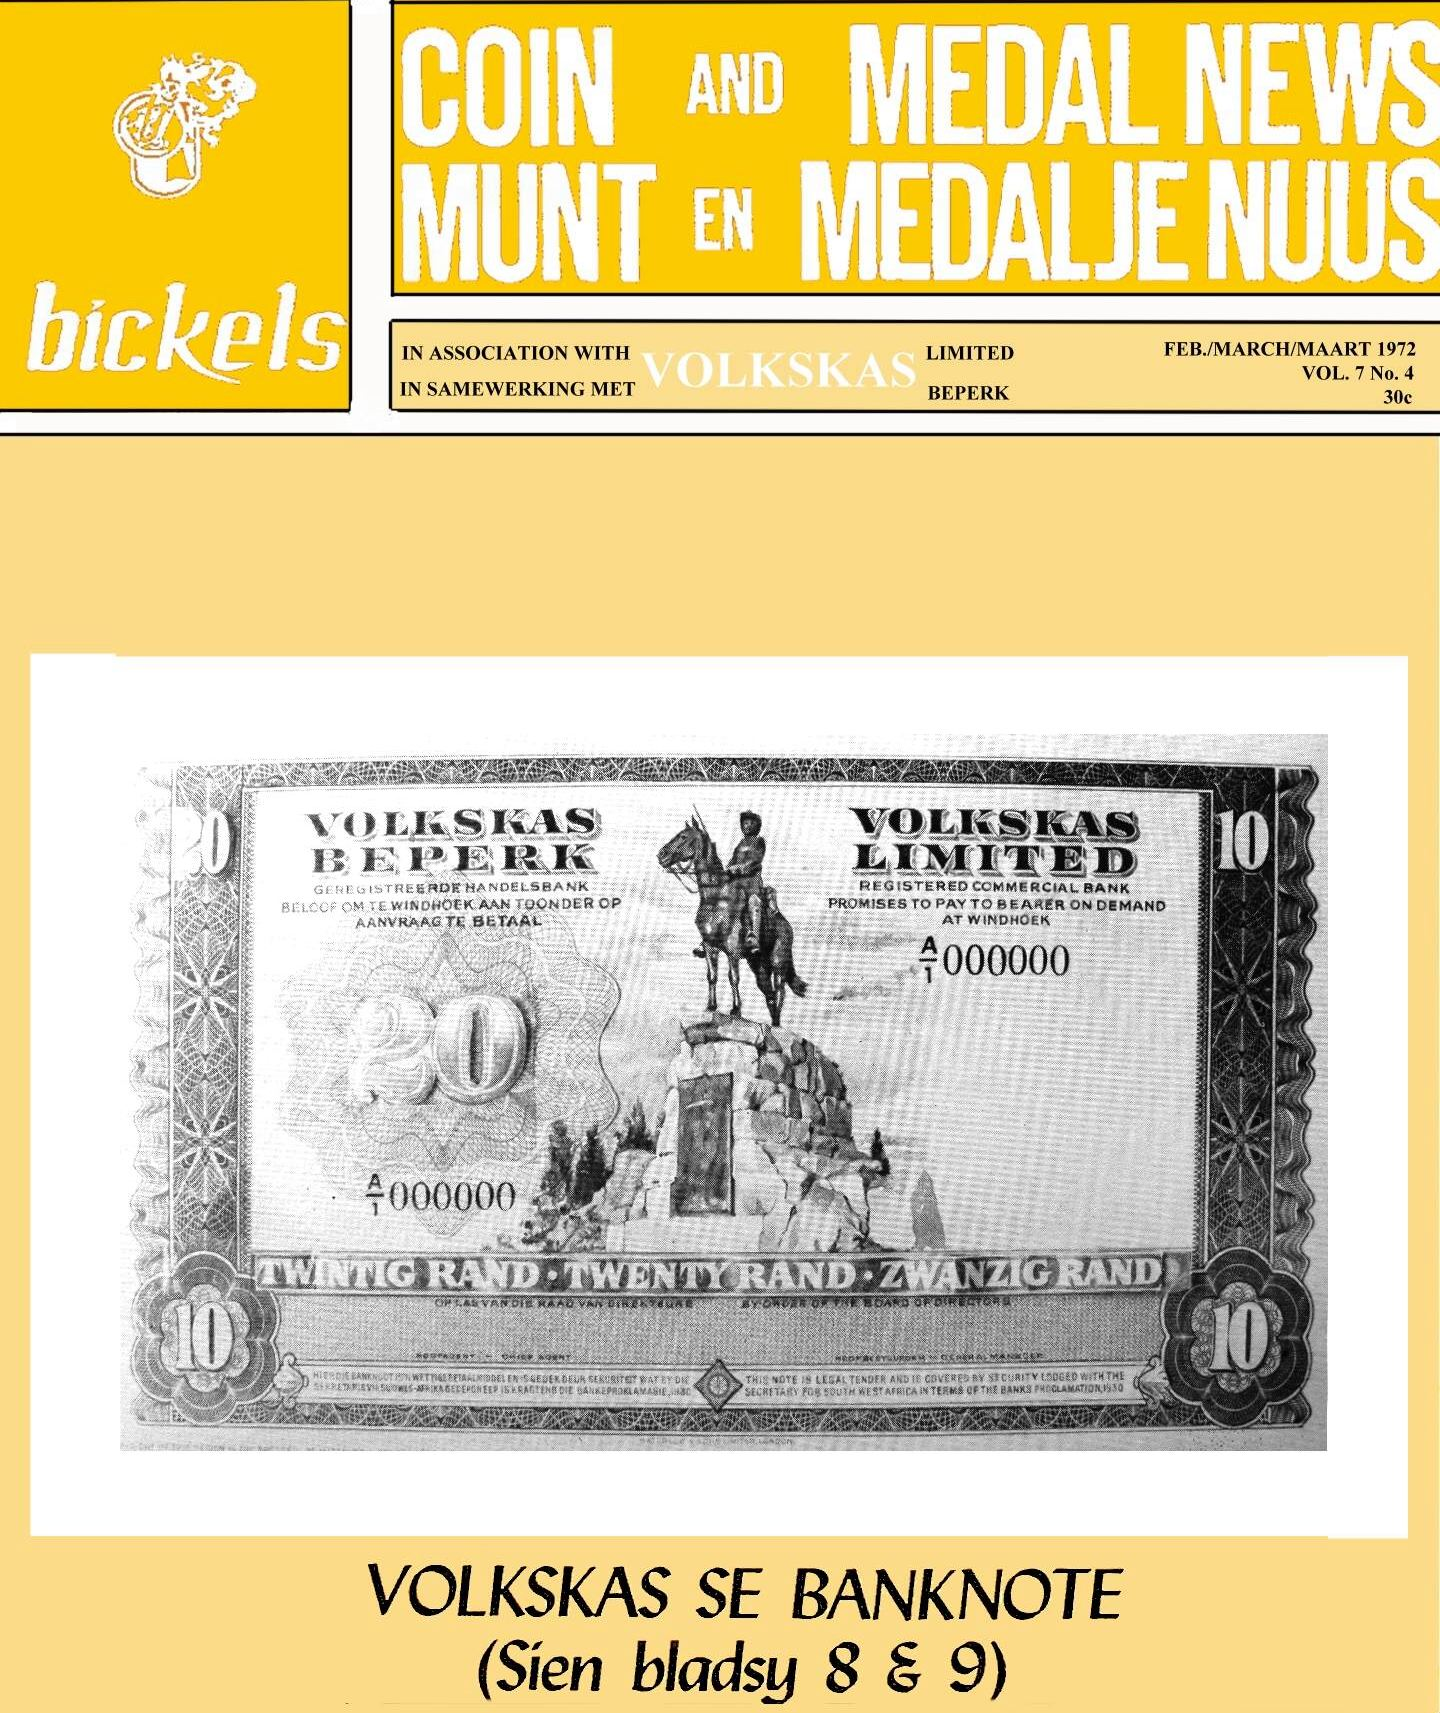 Bickels Coin & Medal News February March 1972 Vol 7 No 4